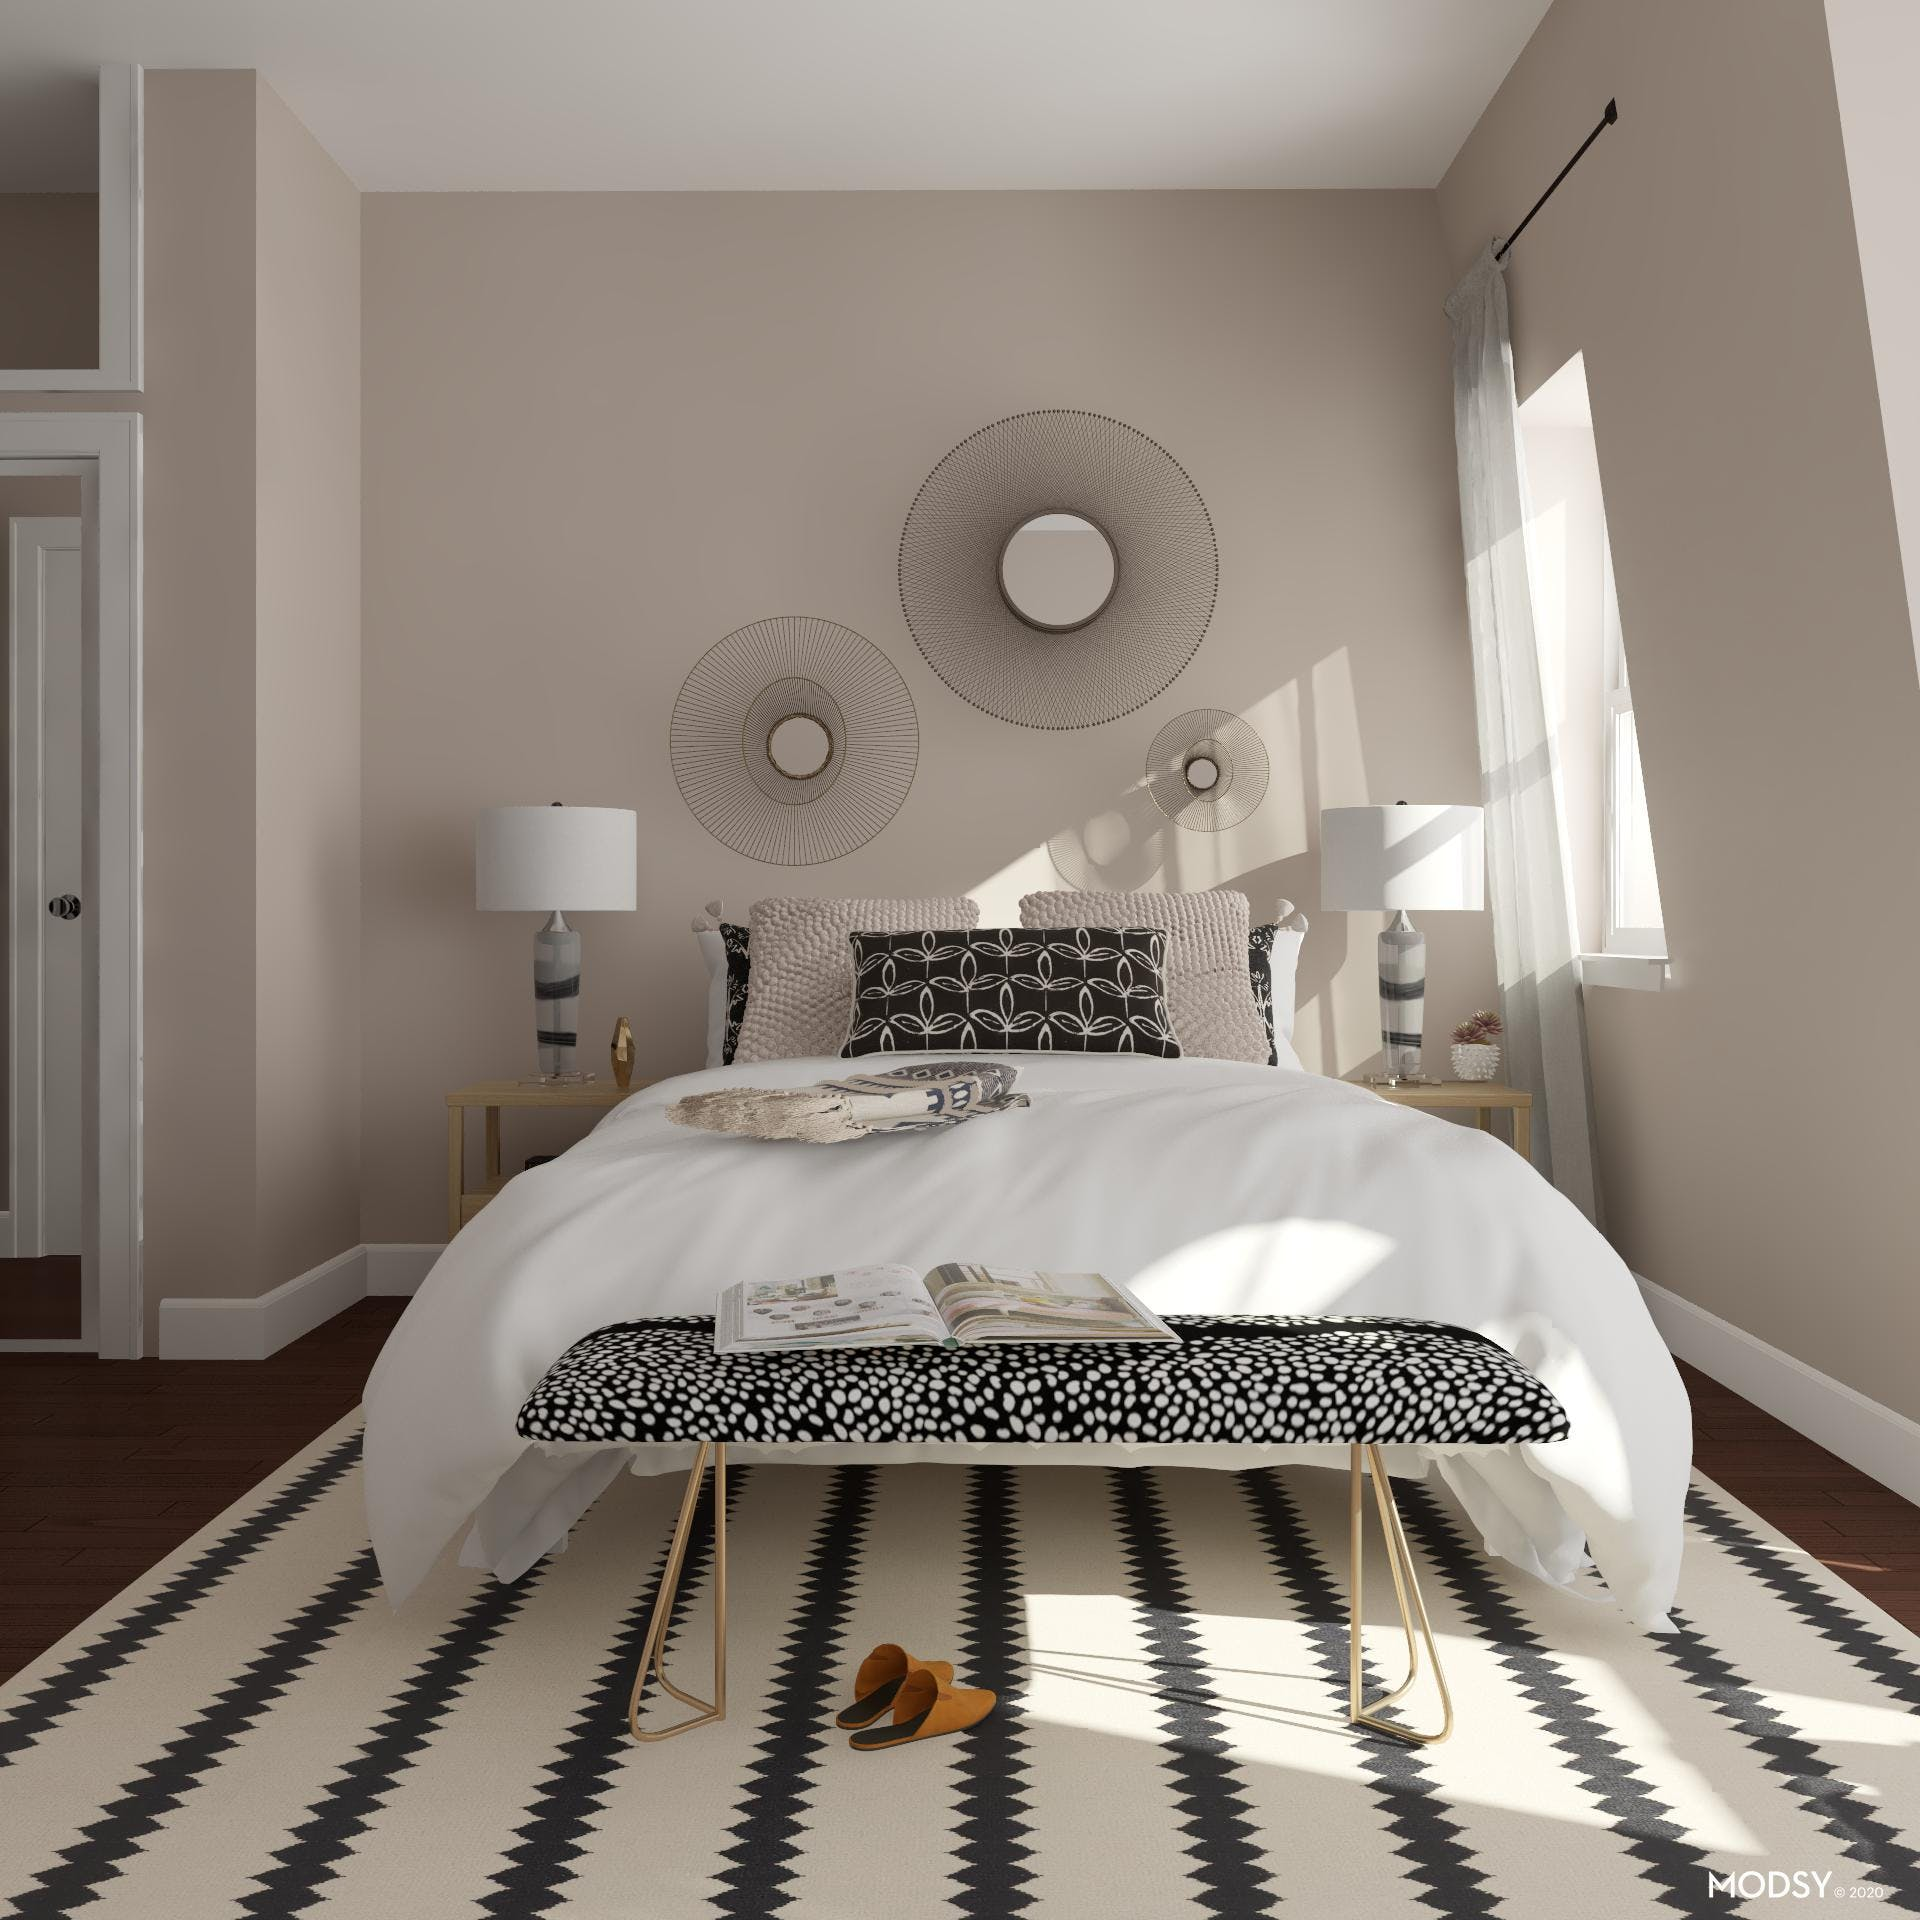 Bedroom Accented With Black And White